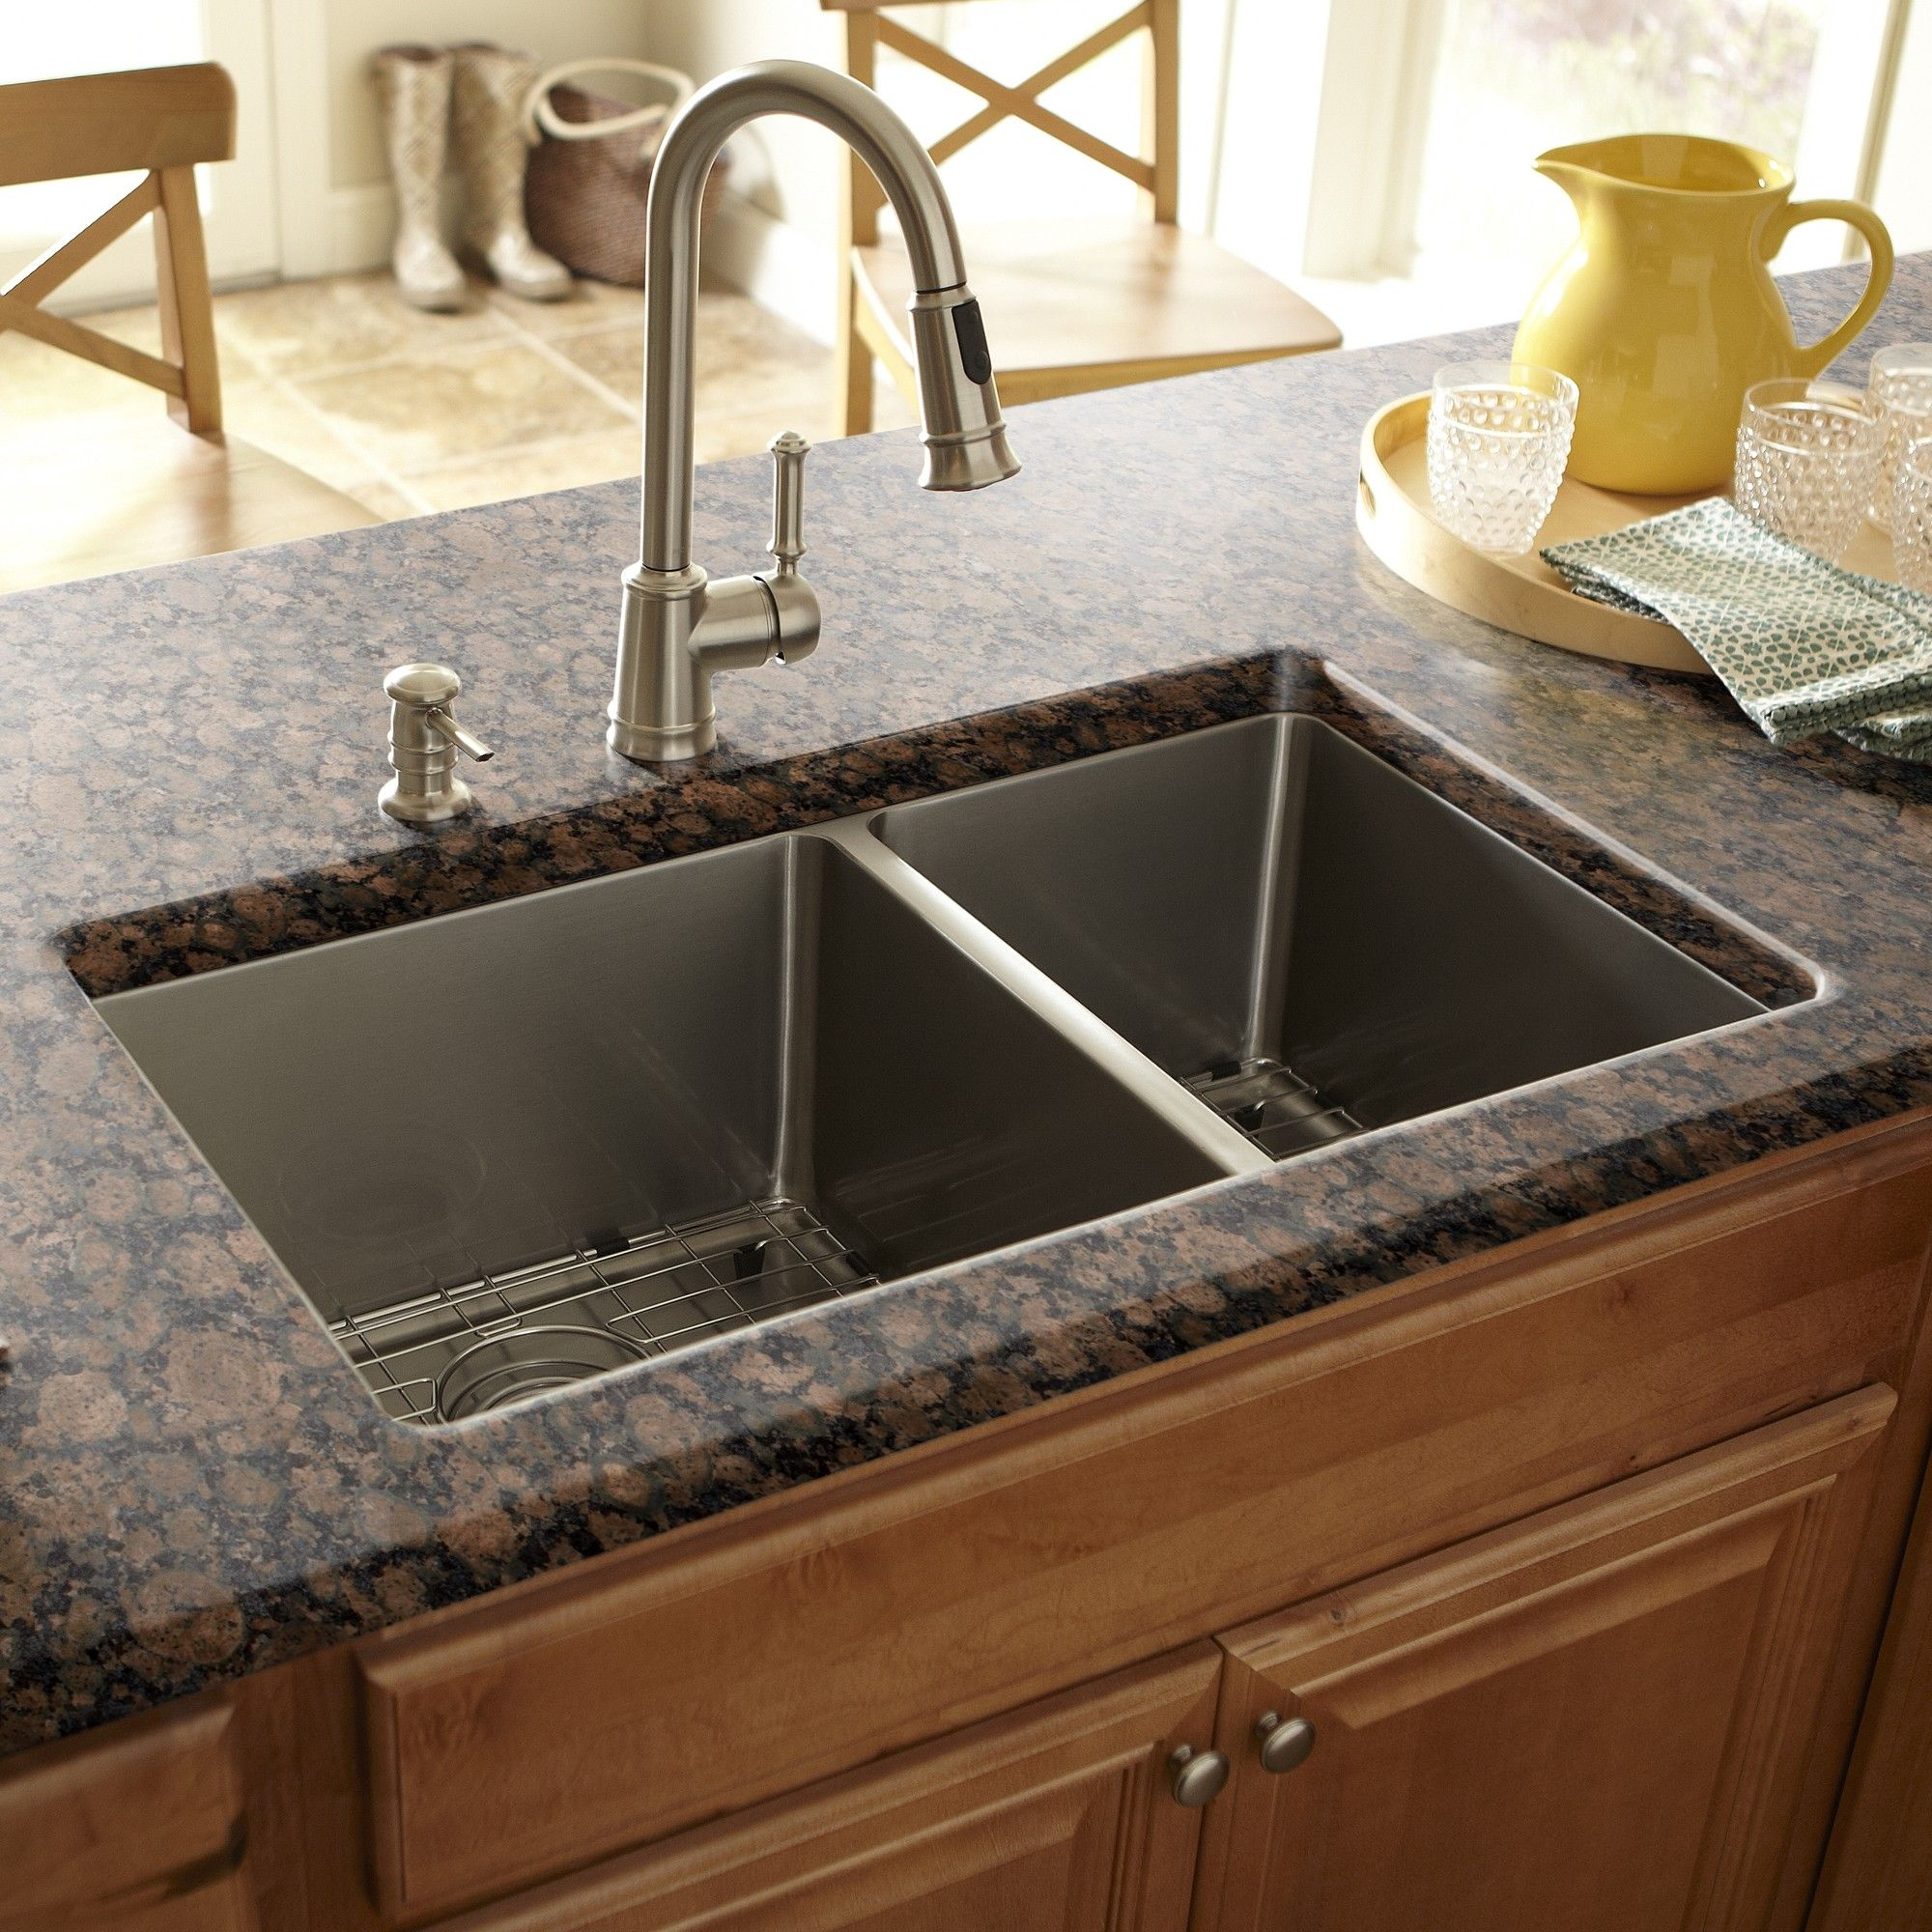 Schon Double Bowl 17 X 30 Kitchen Sink Contemporary Kitchen